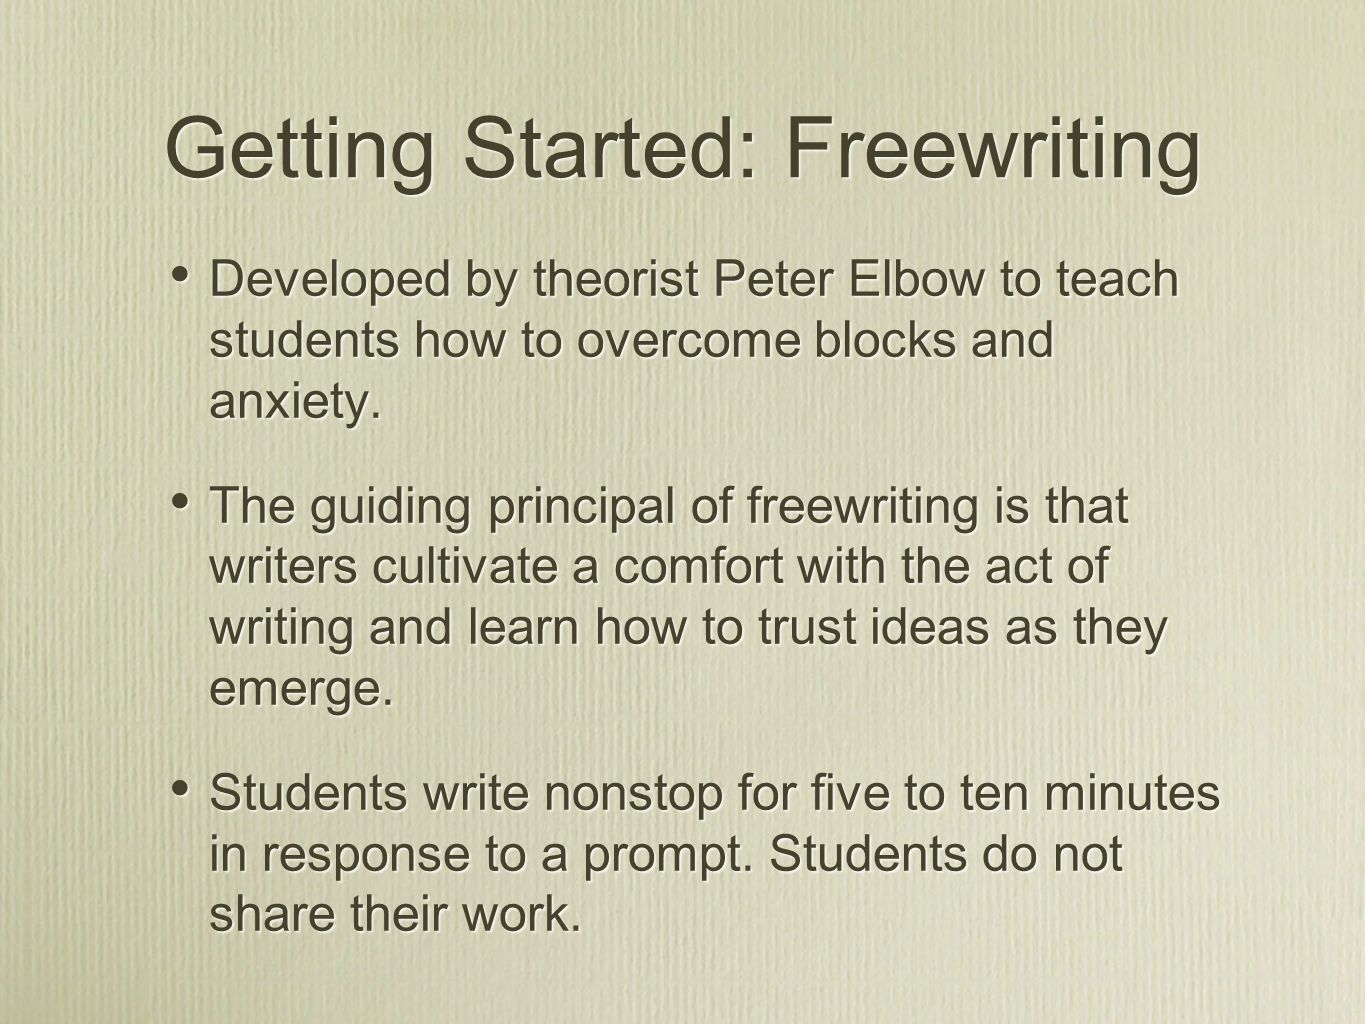 Developed by theorist Peter Elbow to teach students how to overcome blocks and anxiety.